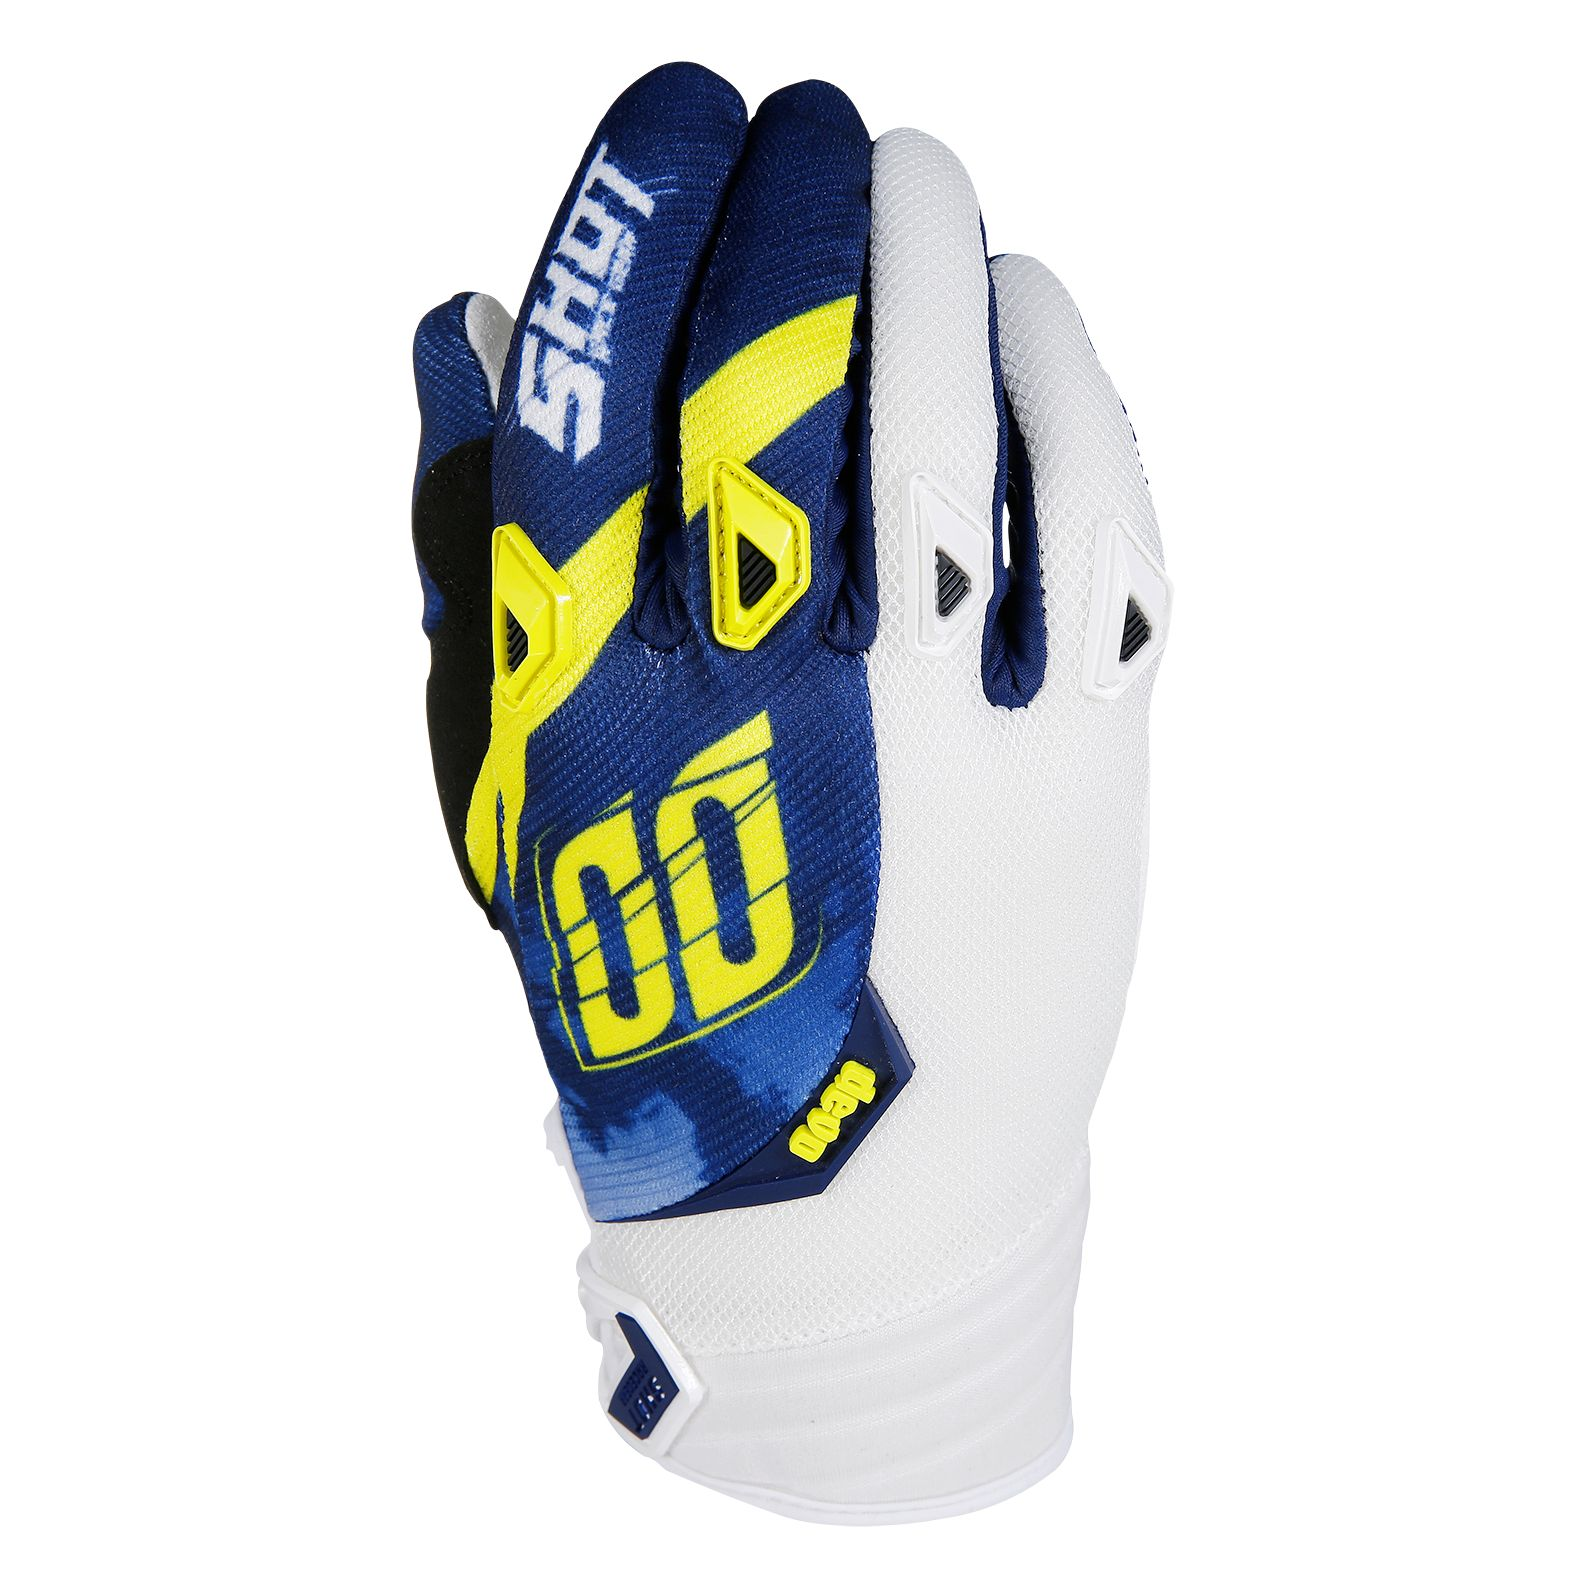 Gants cross Shot destockage DEVO SQUAD BLEU JAUNE  2017